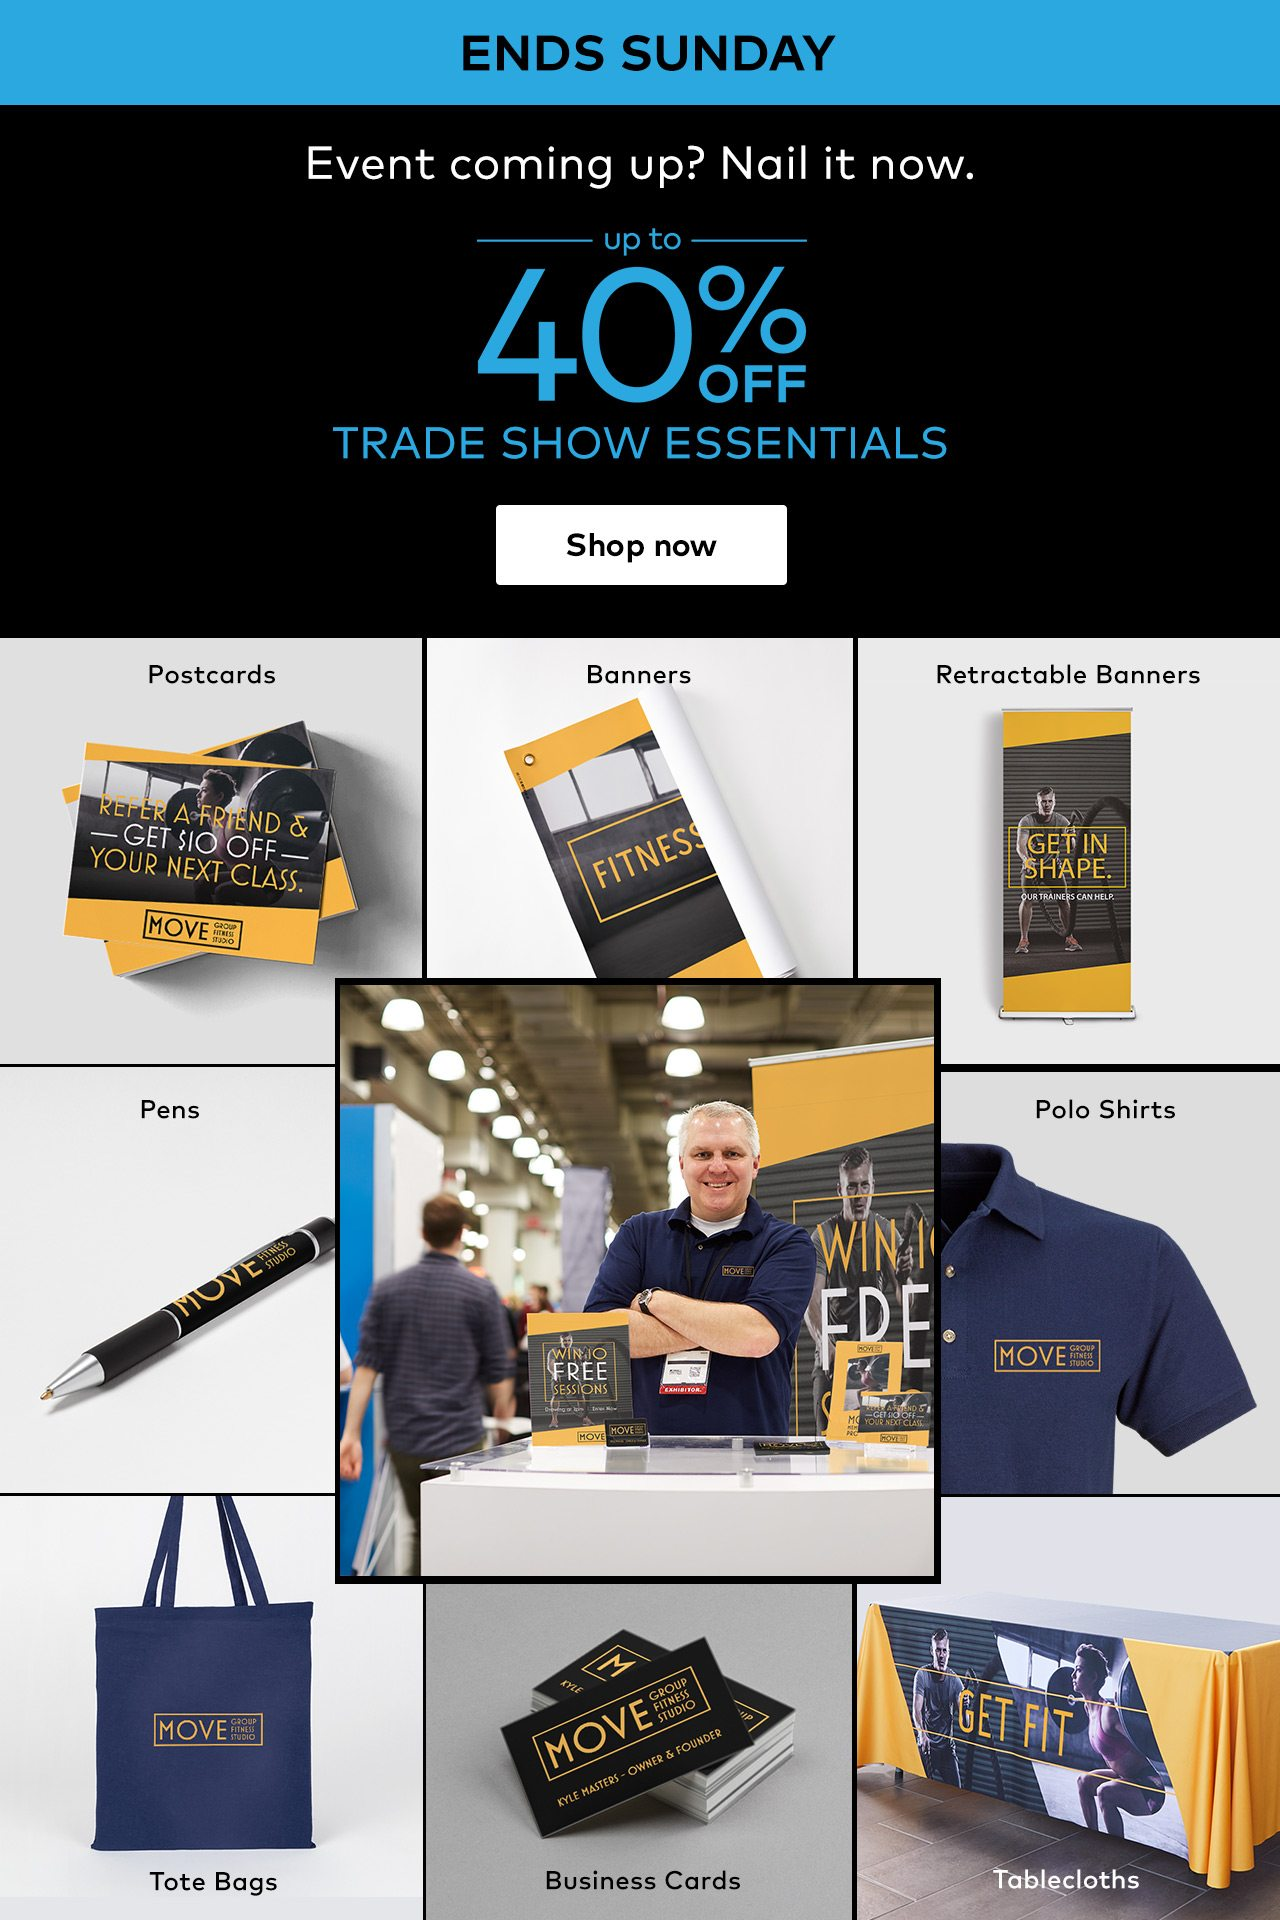 Steal the show | Up to 40% off trade show essentials